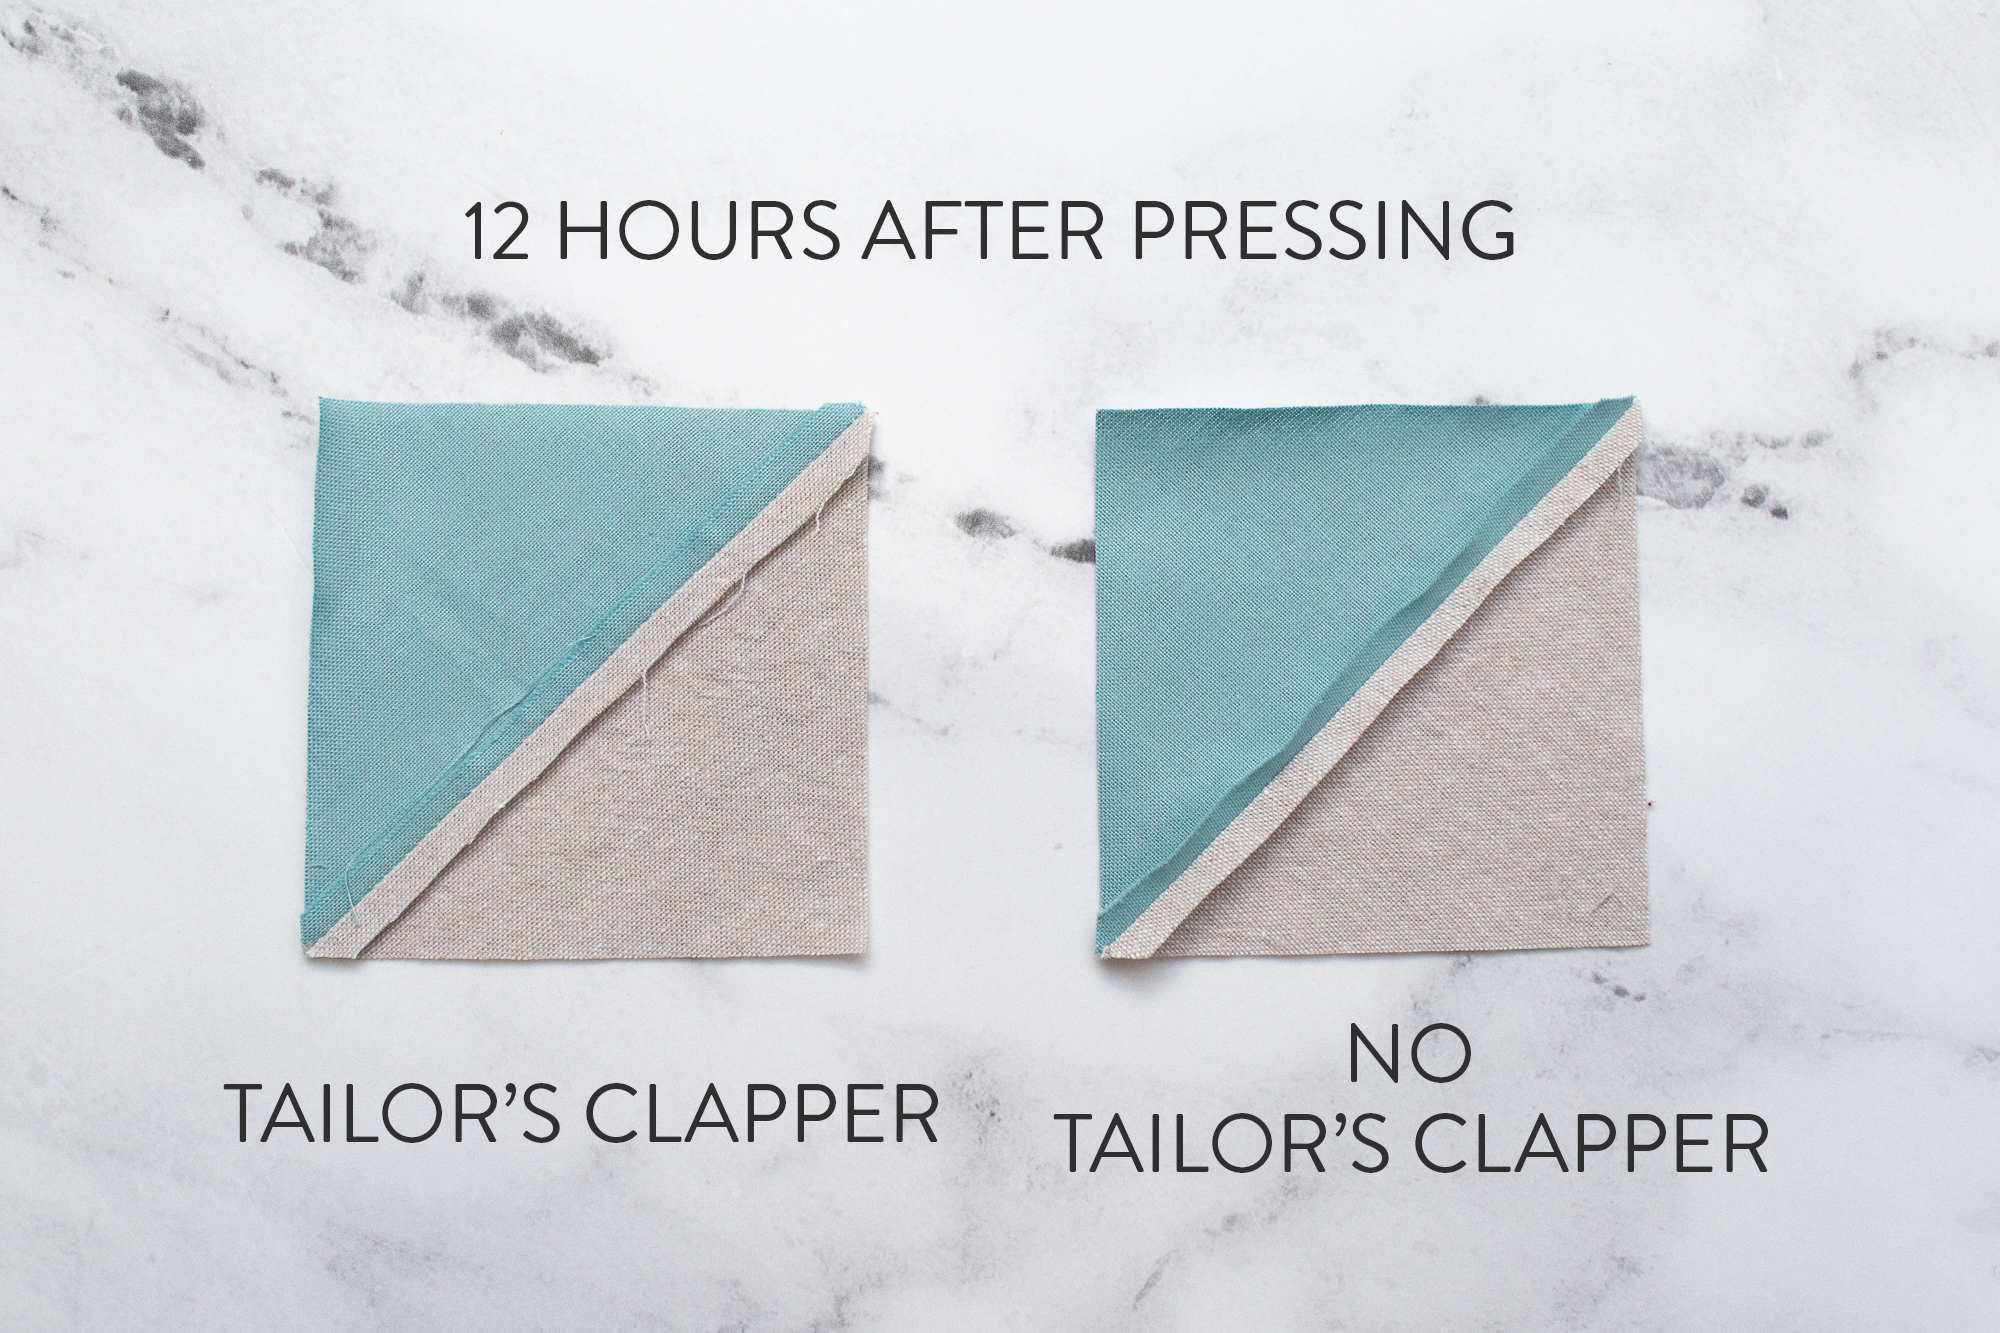 Getting flat seams in your quilts using a tailor's clapper can seem like magic. But it's actually science! Read this question and answer with a scientist and woodworker about how tailor's clapper work and why they leave your quilt seams looking crisp and sharp! suzyquilts.com #quilting #sewingdiy